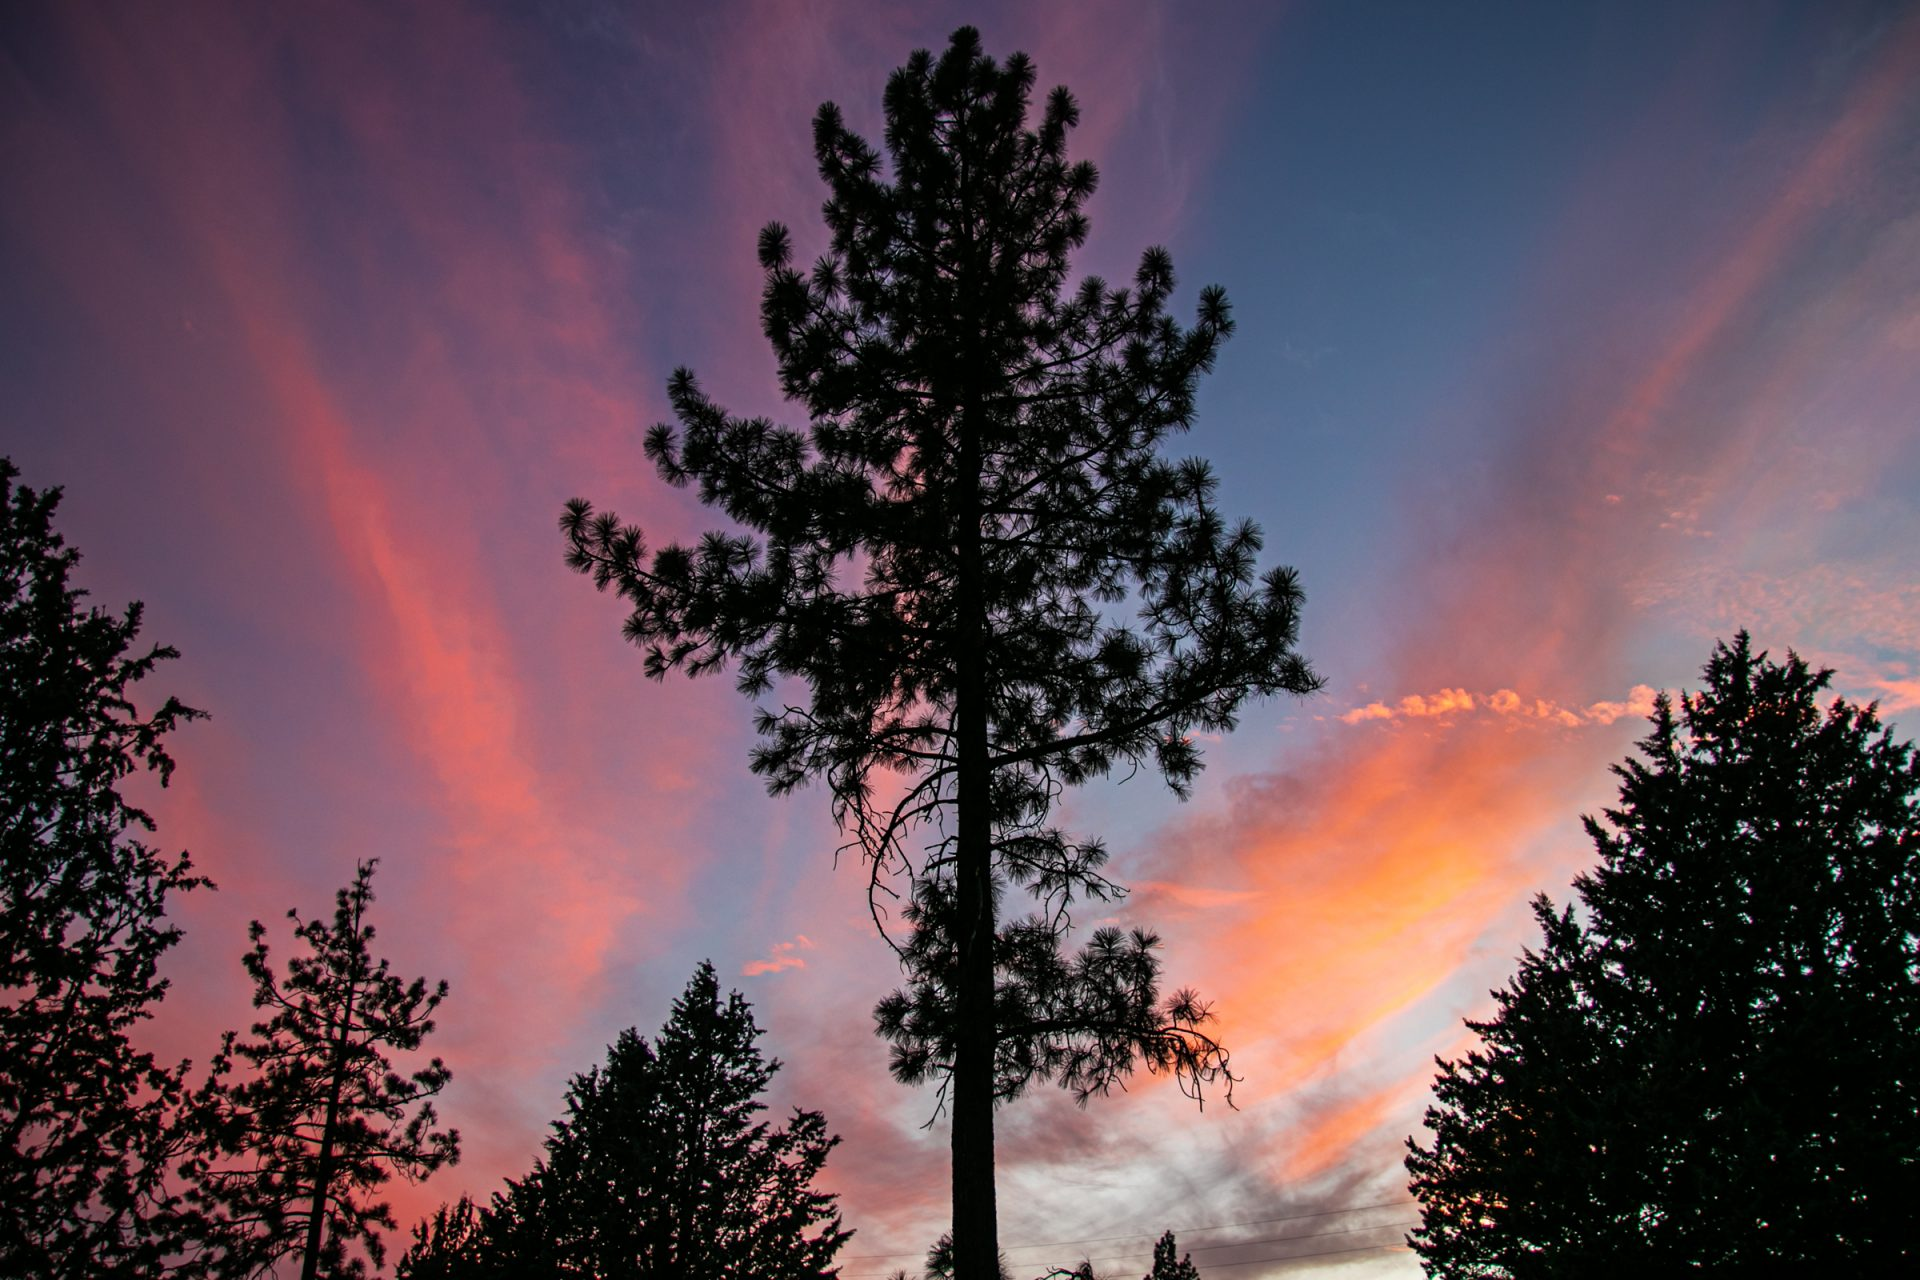 Sunset Colored Clouds Behind Tall Tree